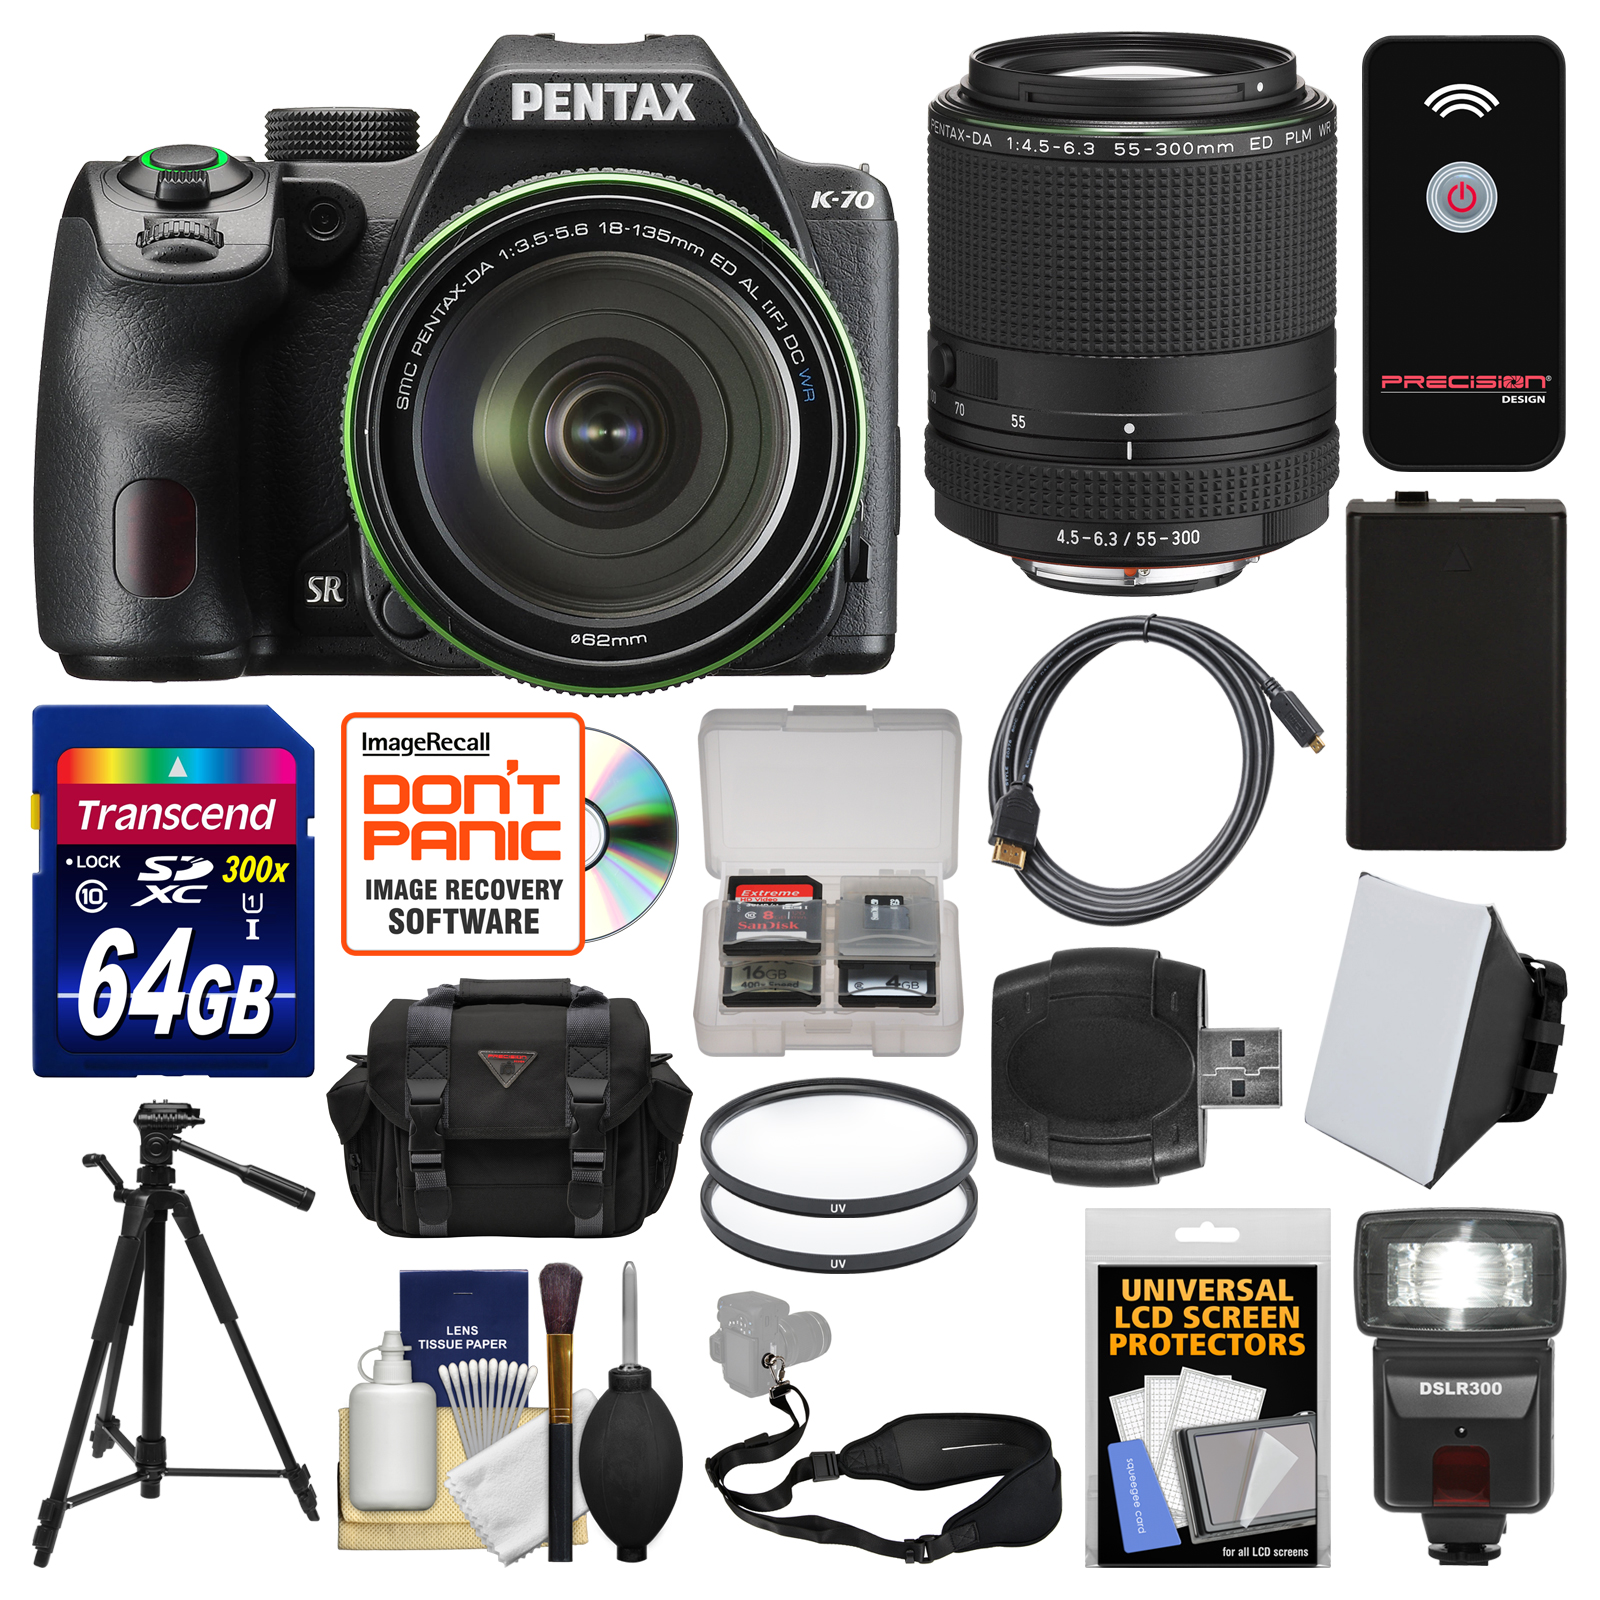 Pentax K-70 All Weather Wi-Fi Digital Camera & 18-135mm WR Lens (Black) with 55-300mm Lens + 64GB Card + Case... by Pentax